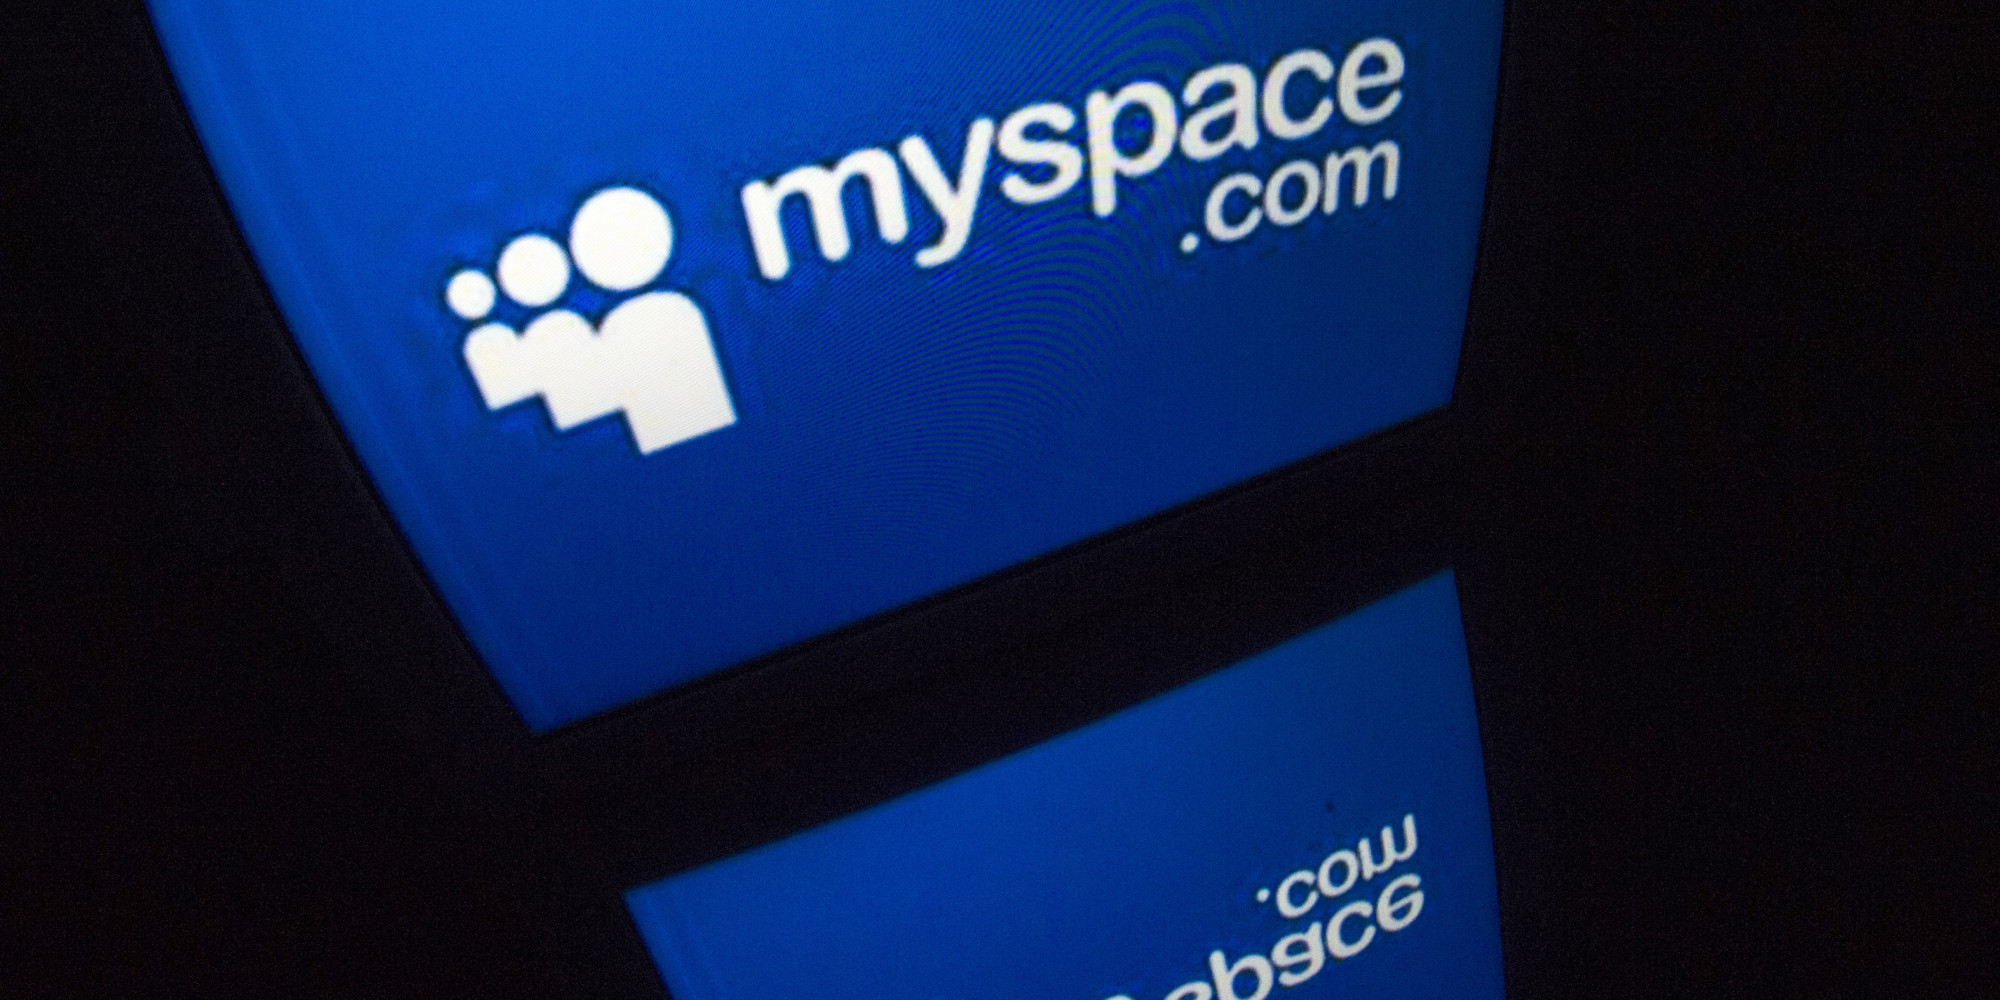 """The """"Myspace"""" logo is seen on a tablet screen on December 4, 2012 in Paris. AFP PHOTO / LIONEL BONAVENTURE        (Photo credit should read LIONEL BONAVENTURE/AFP/Getty Images)"""